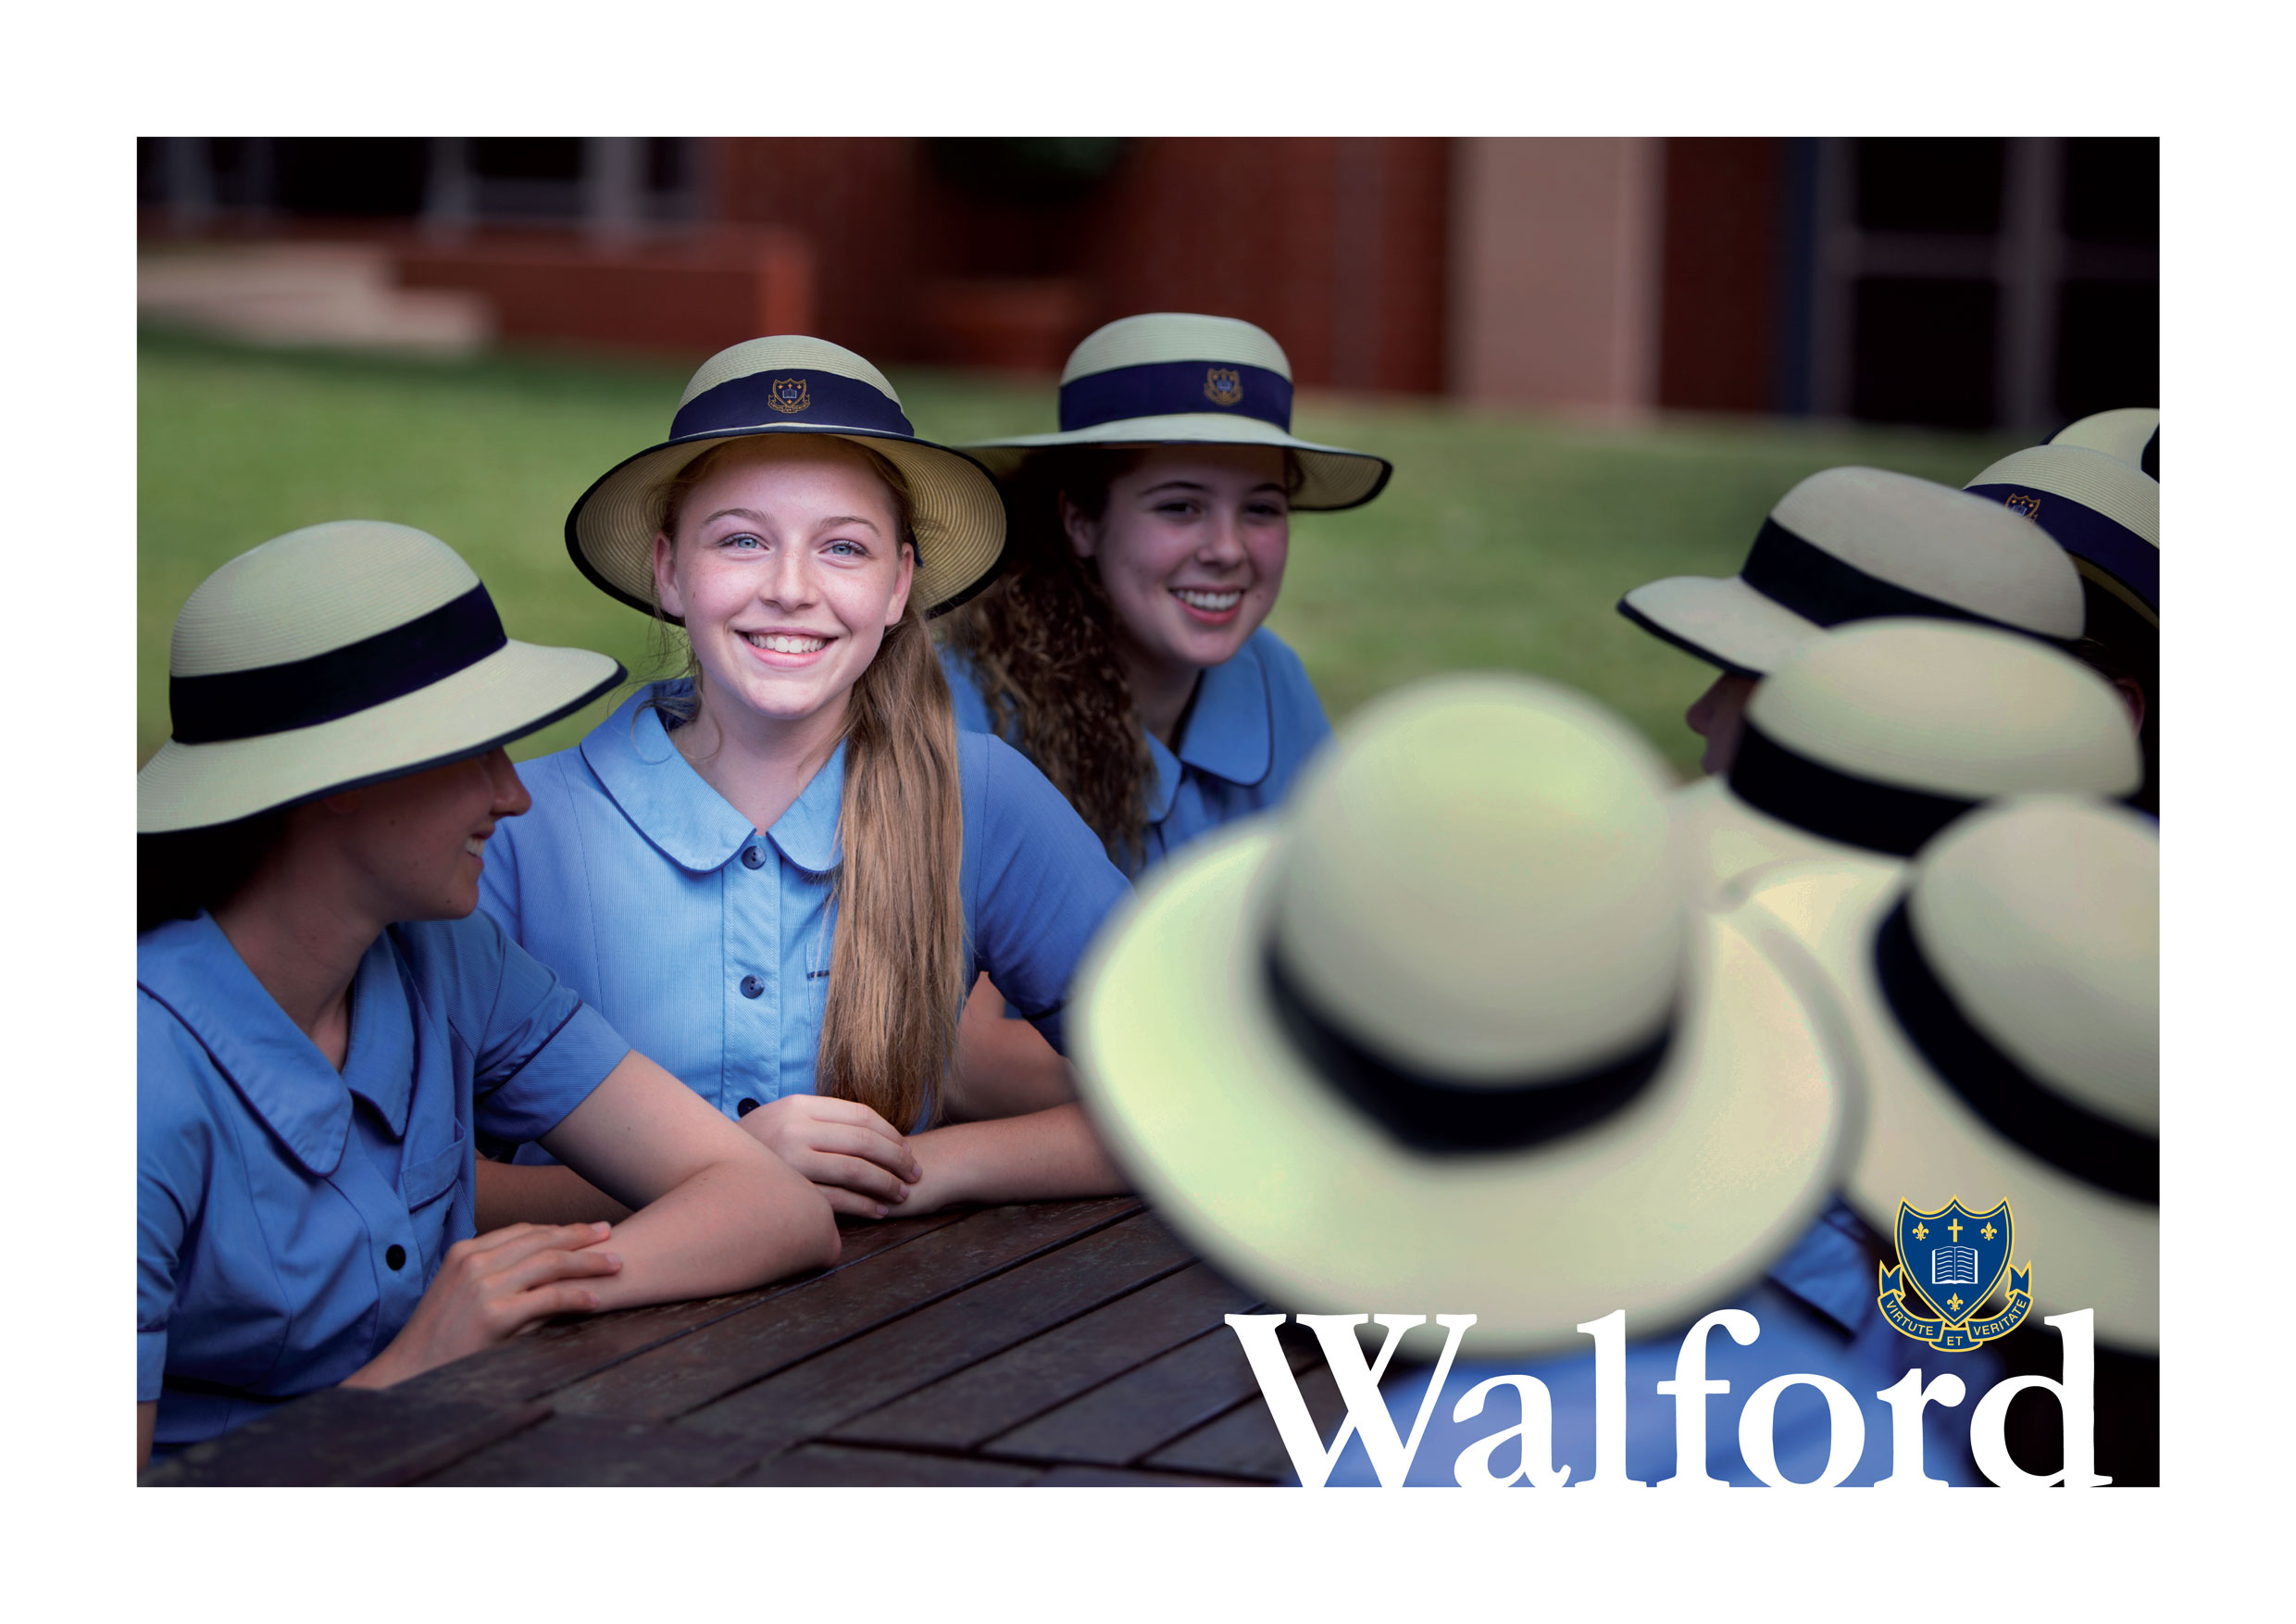 WALFORD-BRANDING-IMAGES_2